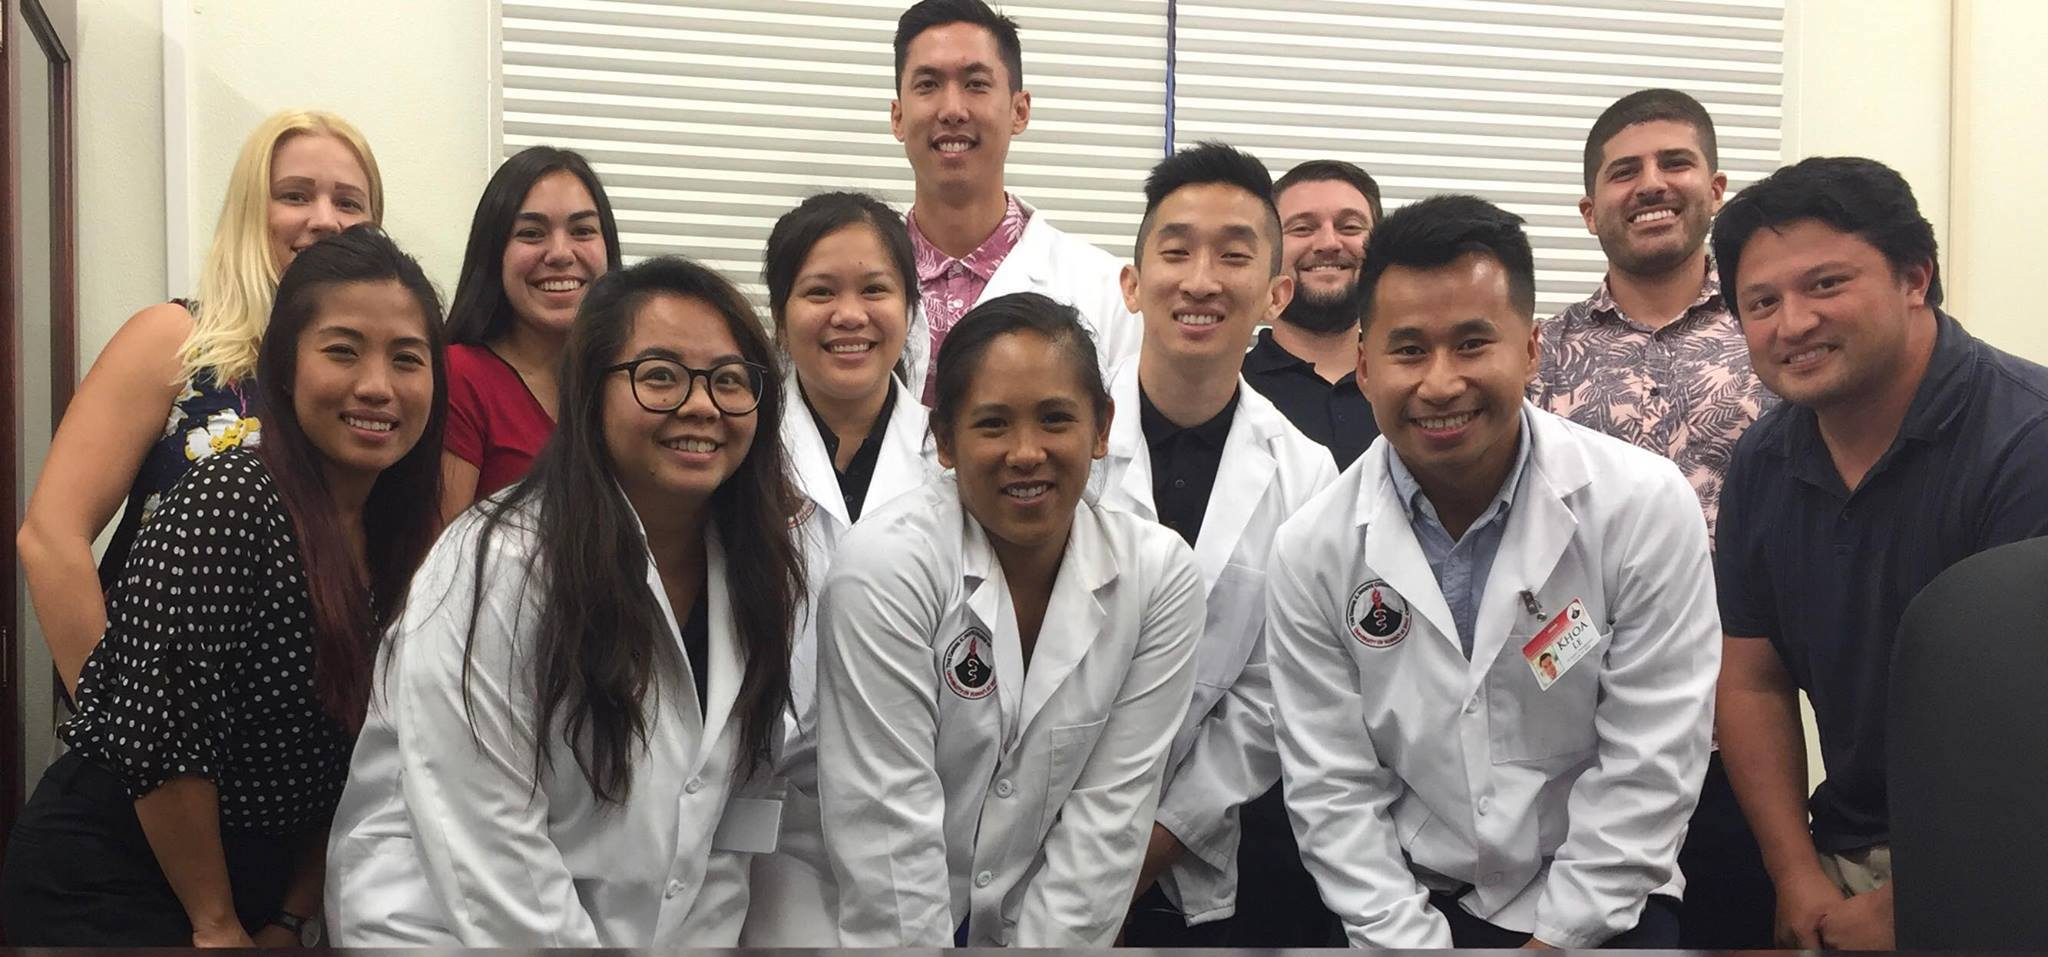 Pharmacy Students pose together in their lab coats.